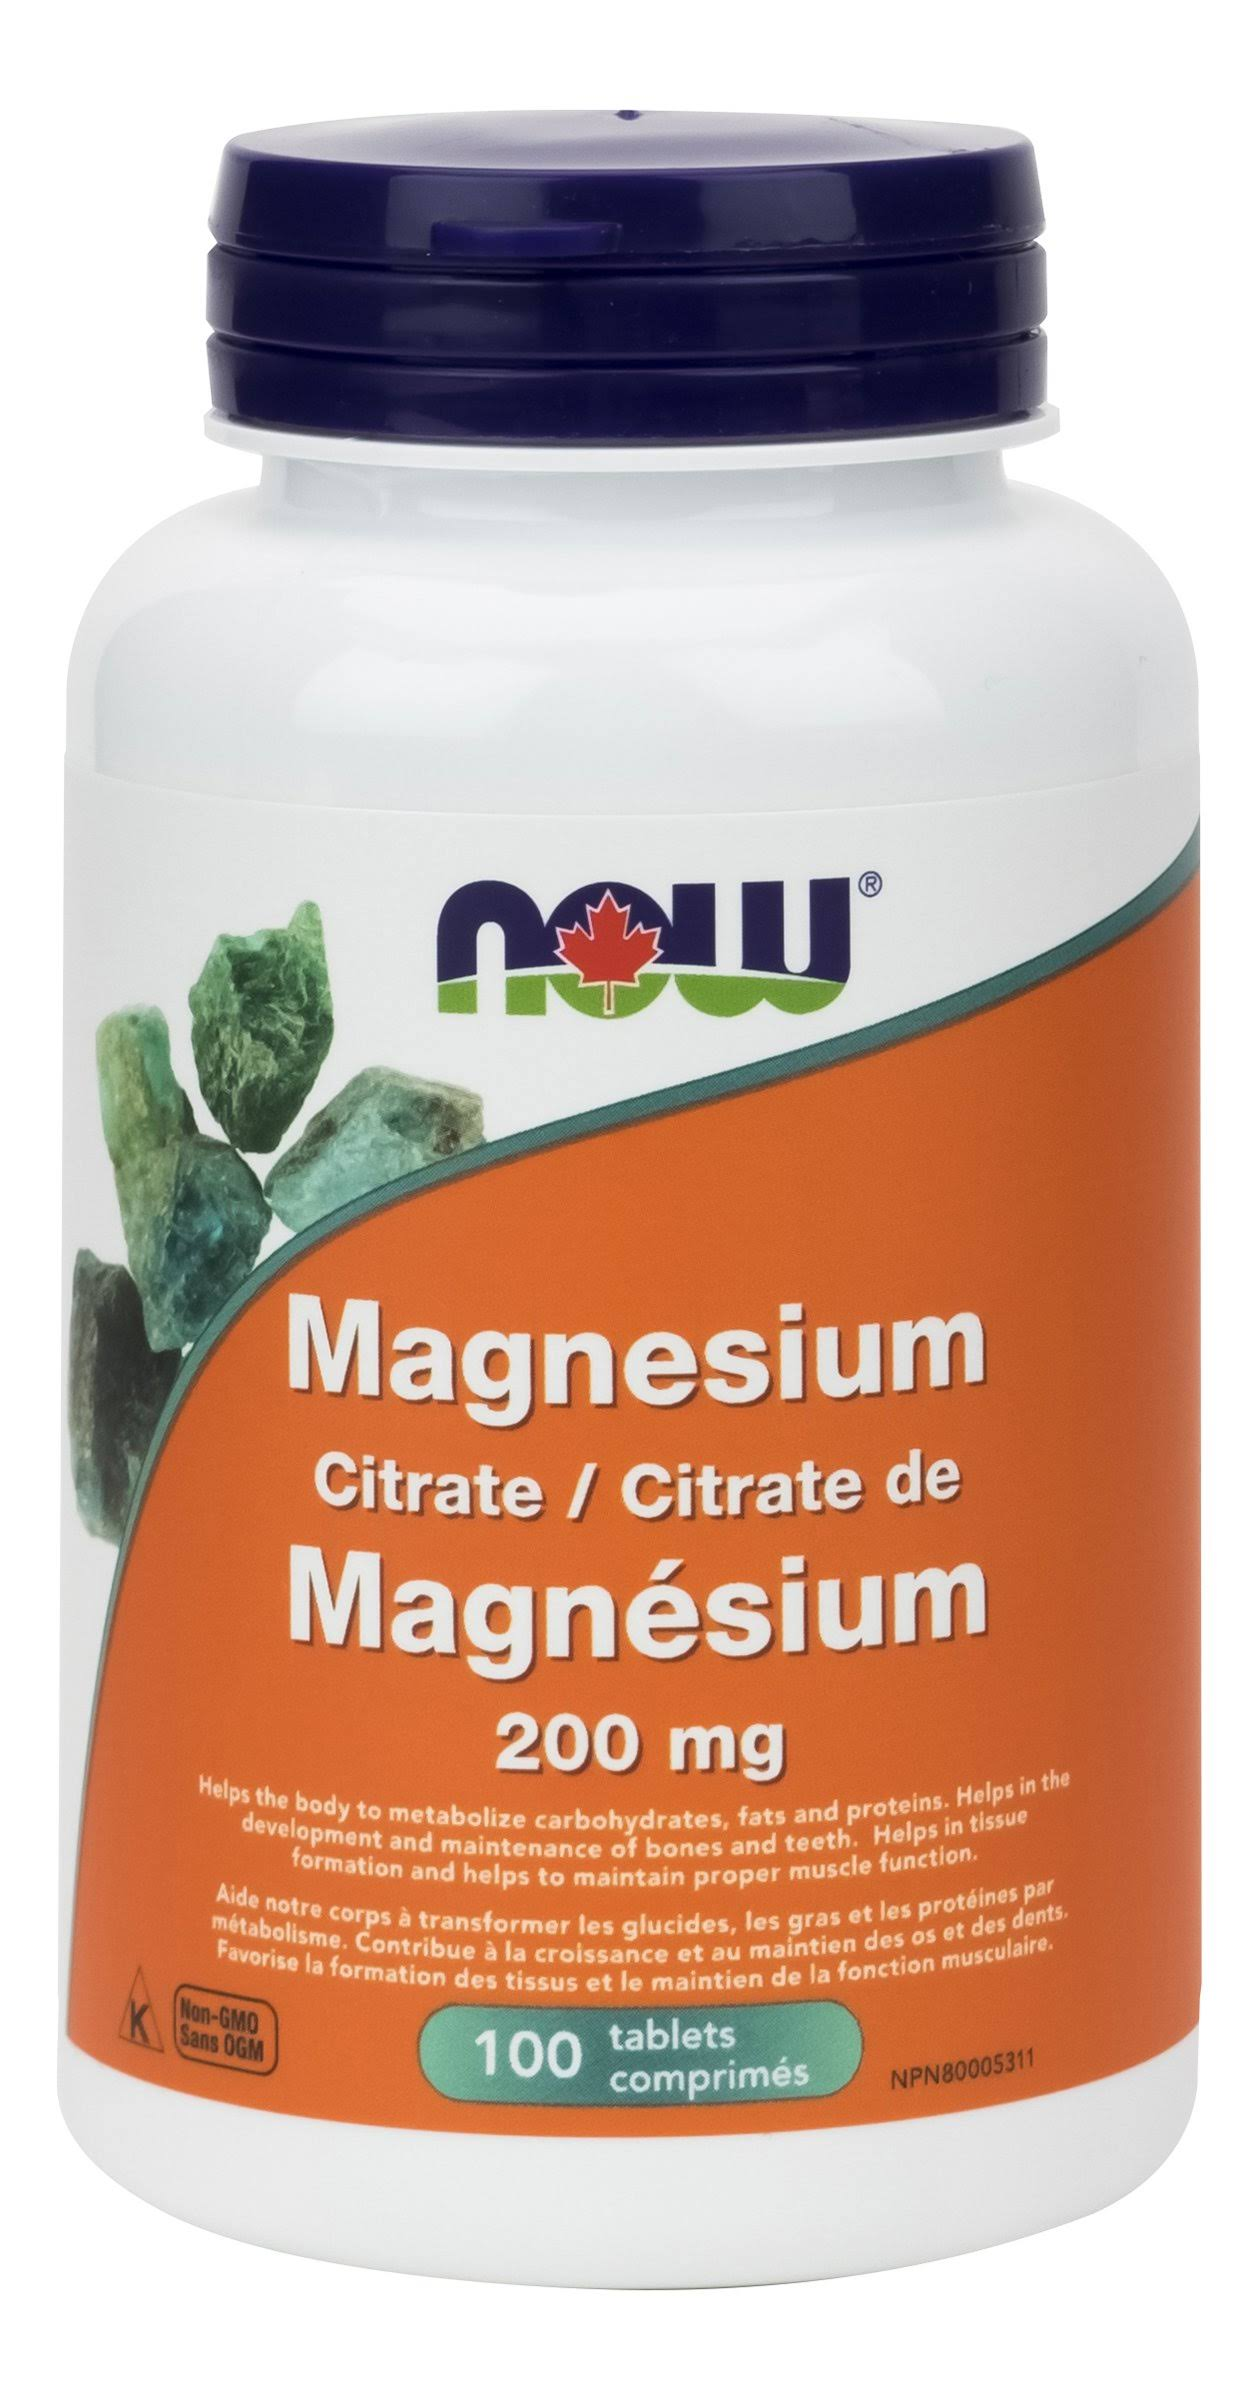 Now Foods Magnesium Citrate Dietary Supplement - 200mg, 100 Tablets